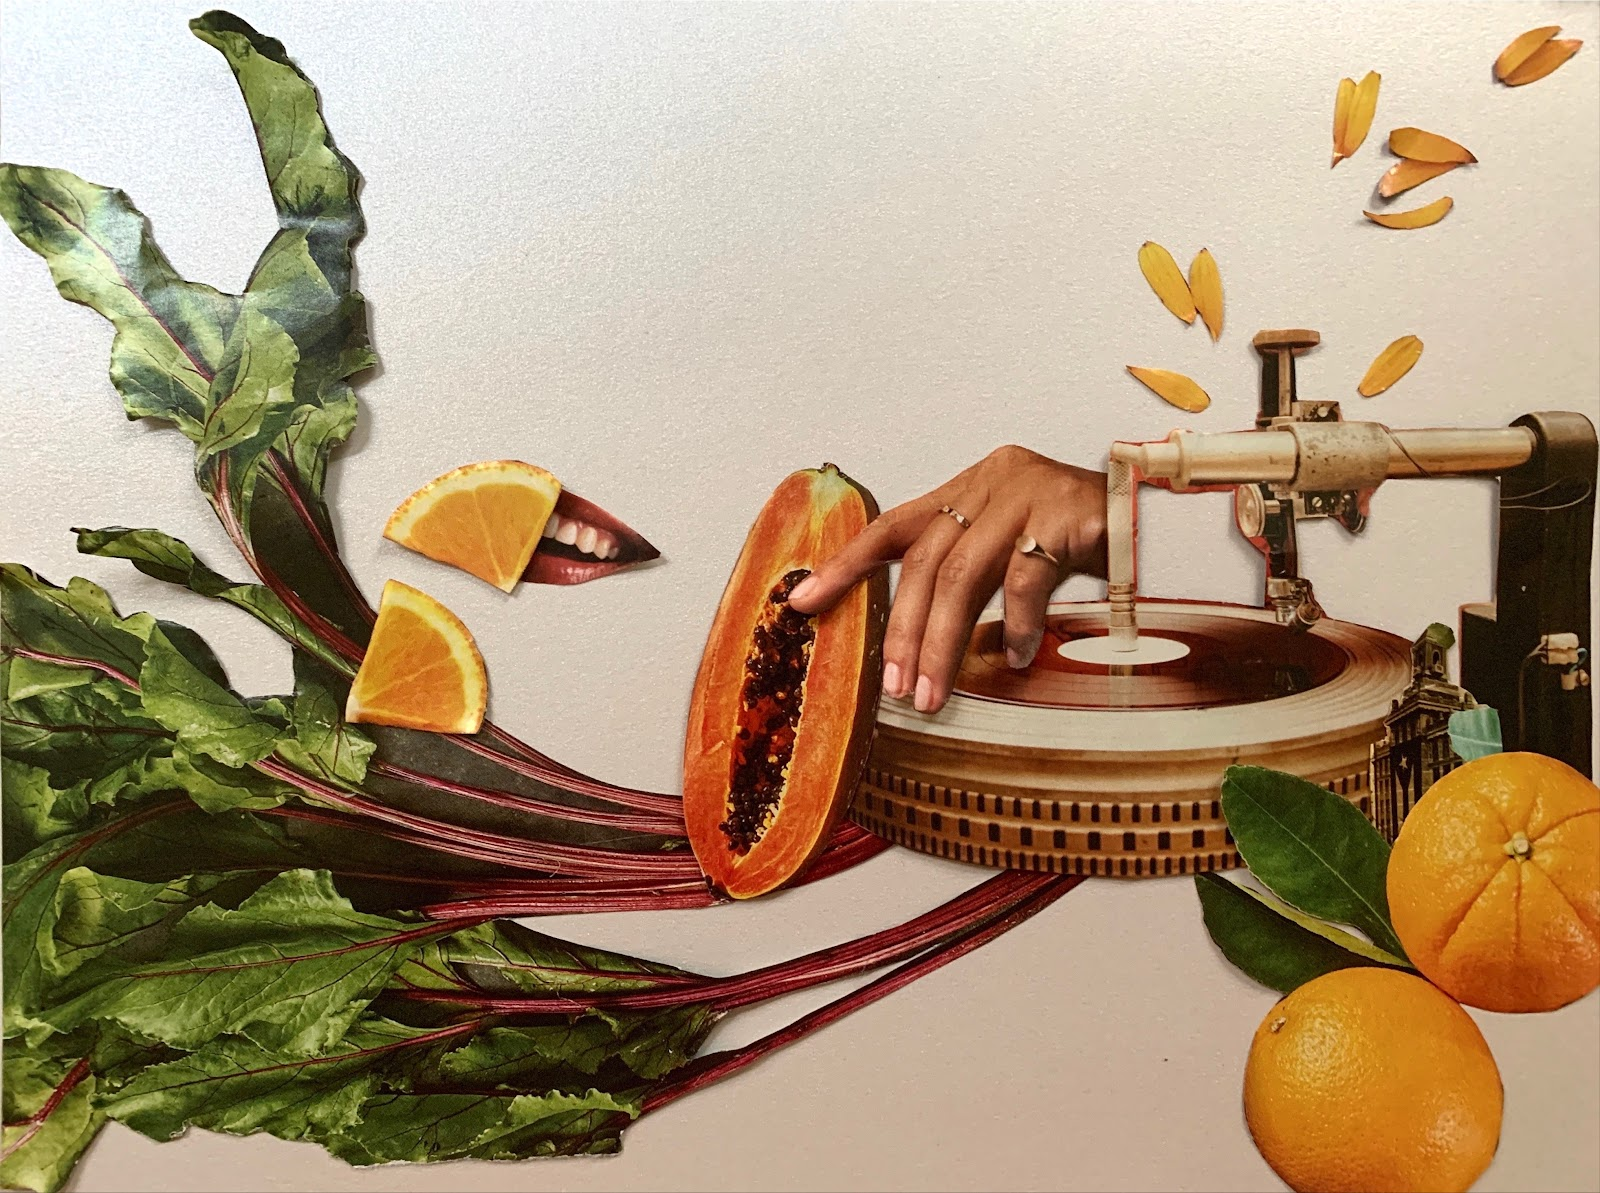 Collage image of rhubarb plants and fruit with image of a hand and record turntable.